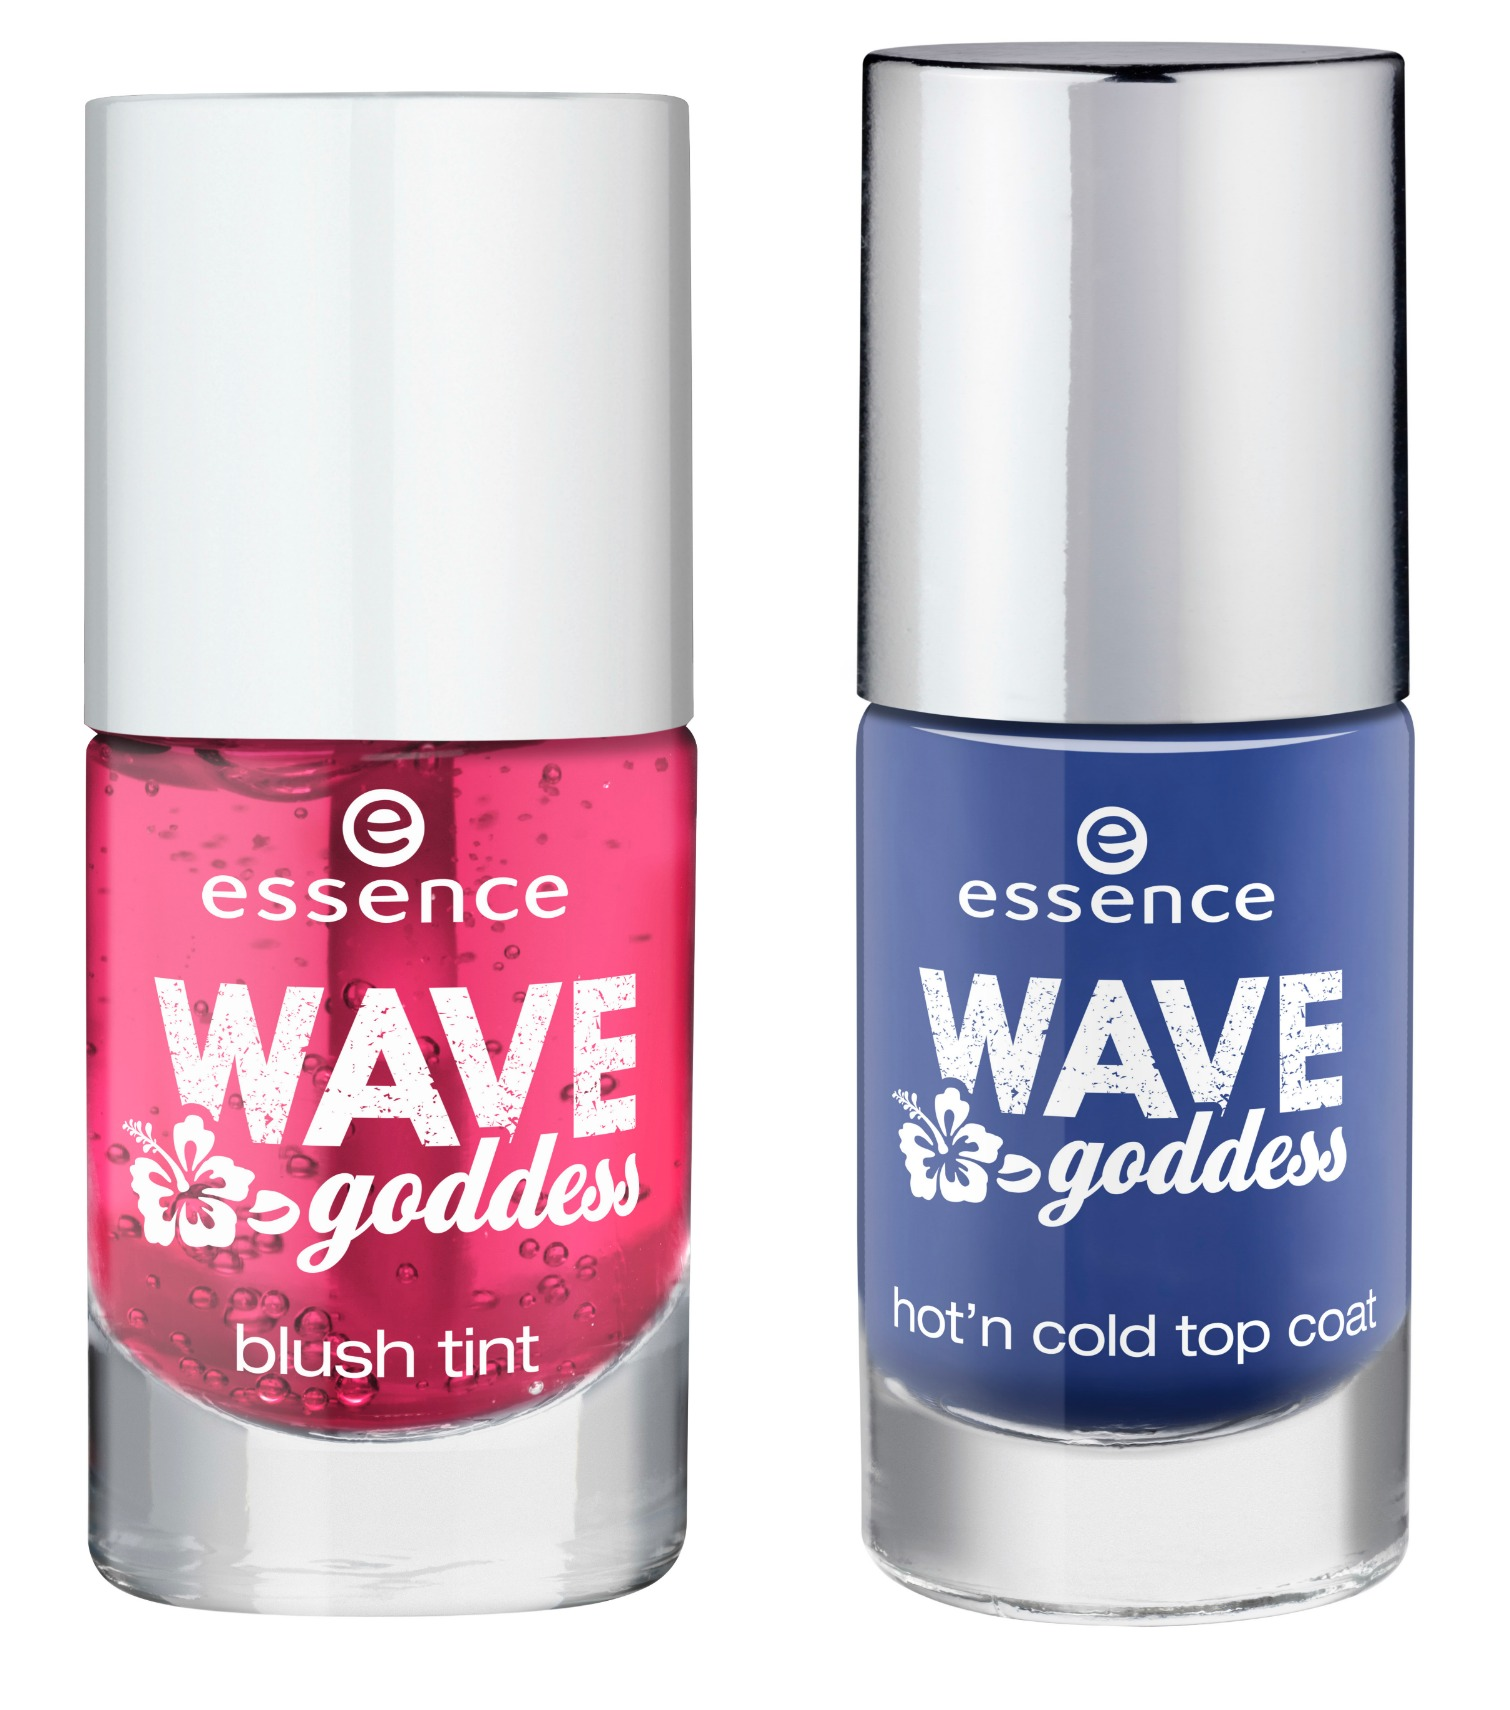 Essence wave goddess blush tint hot'n cold top coat